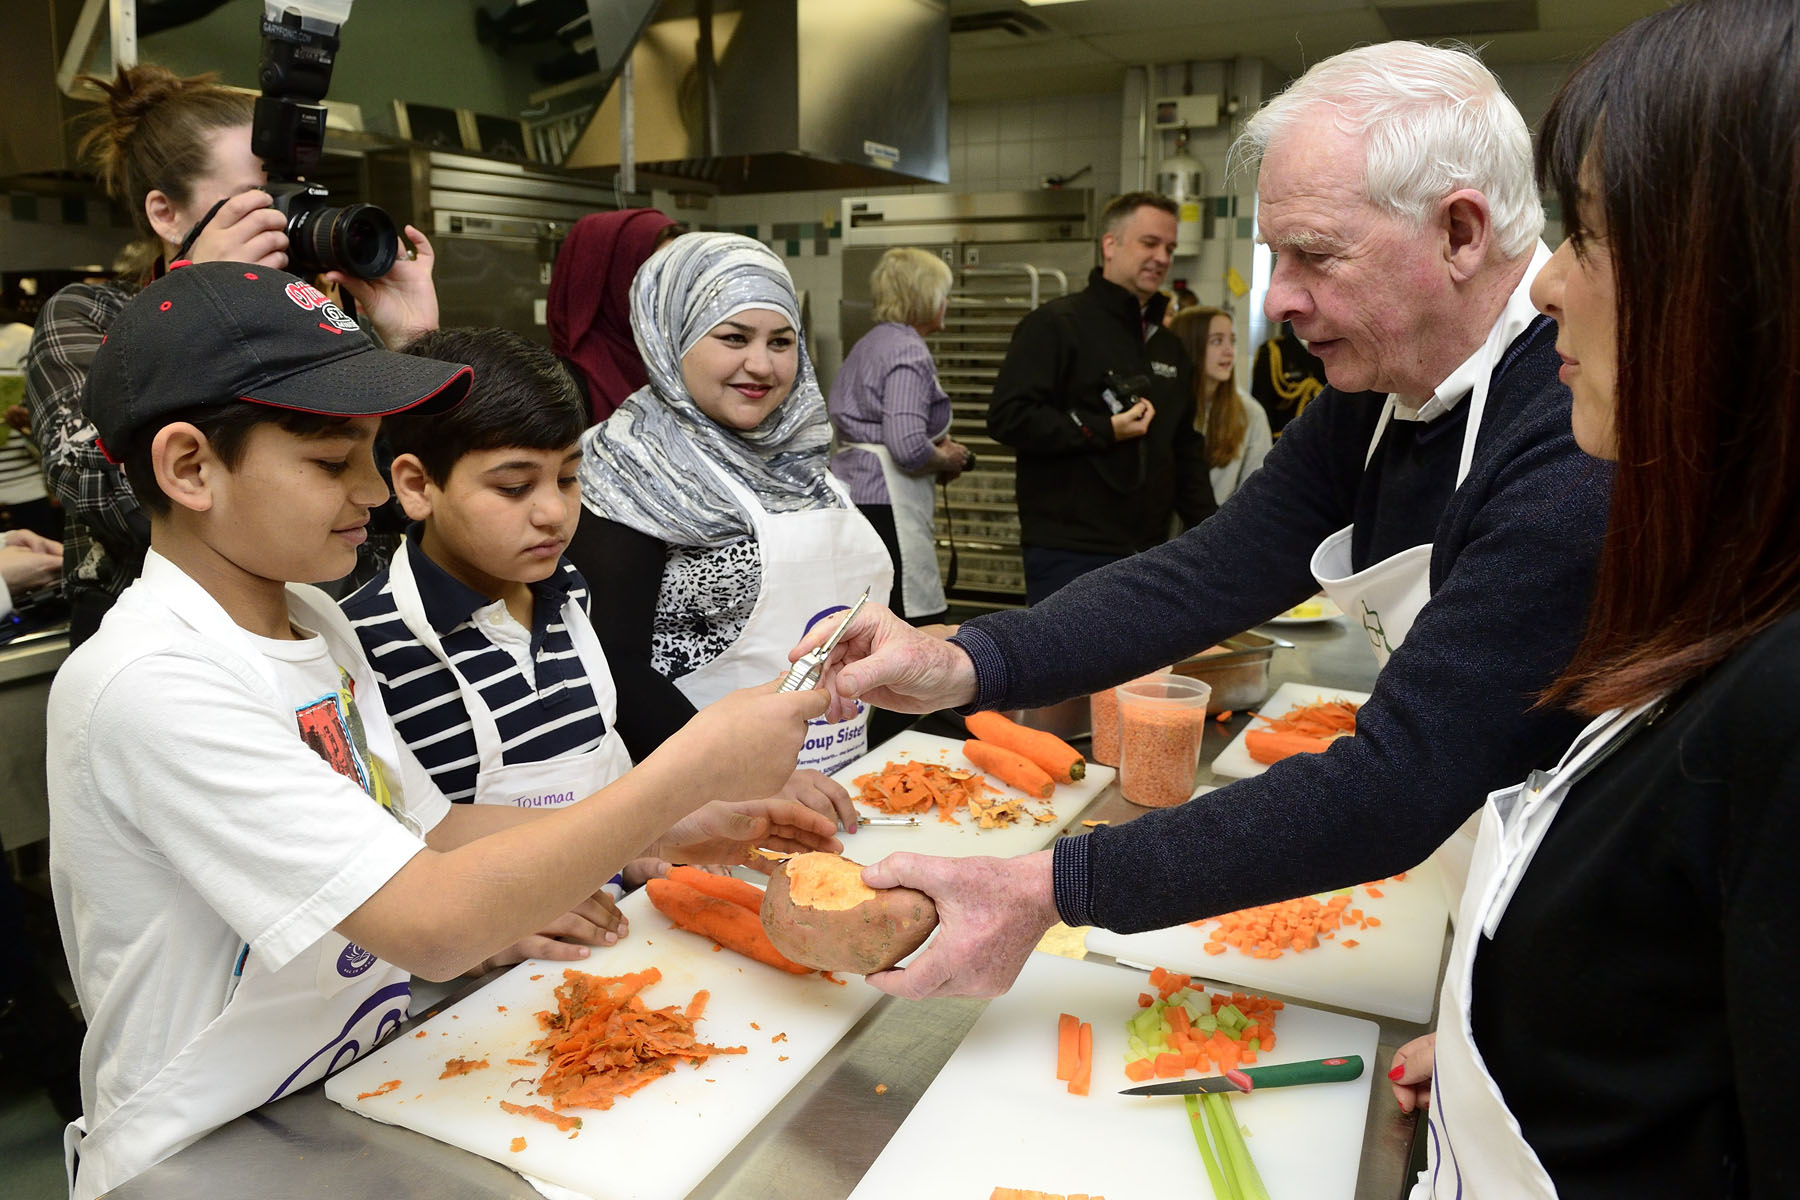 His Excellency joined hundreds of participants to make 5 000 servings of soup for Syrian refugee families arriving in Ottawa.